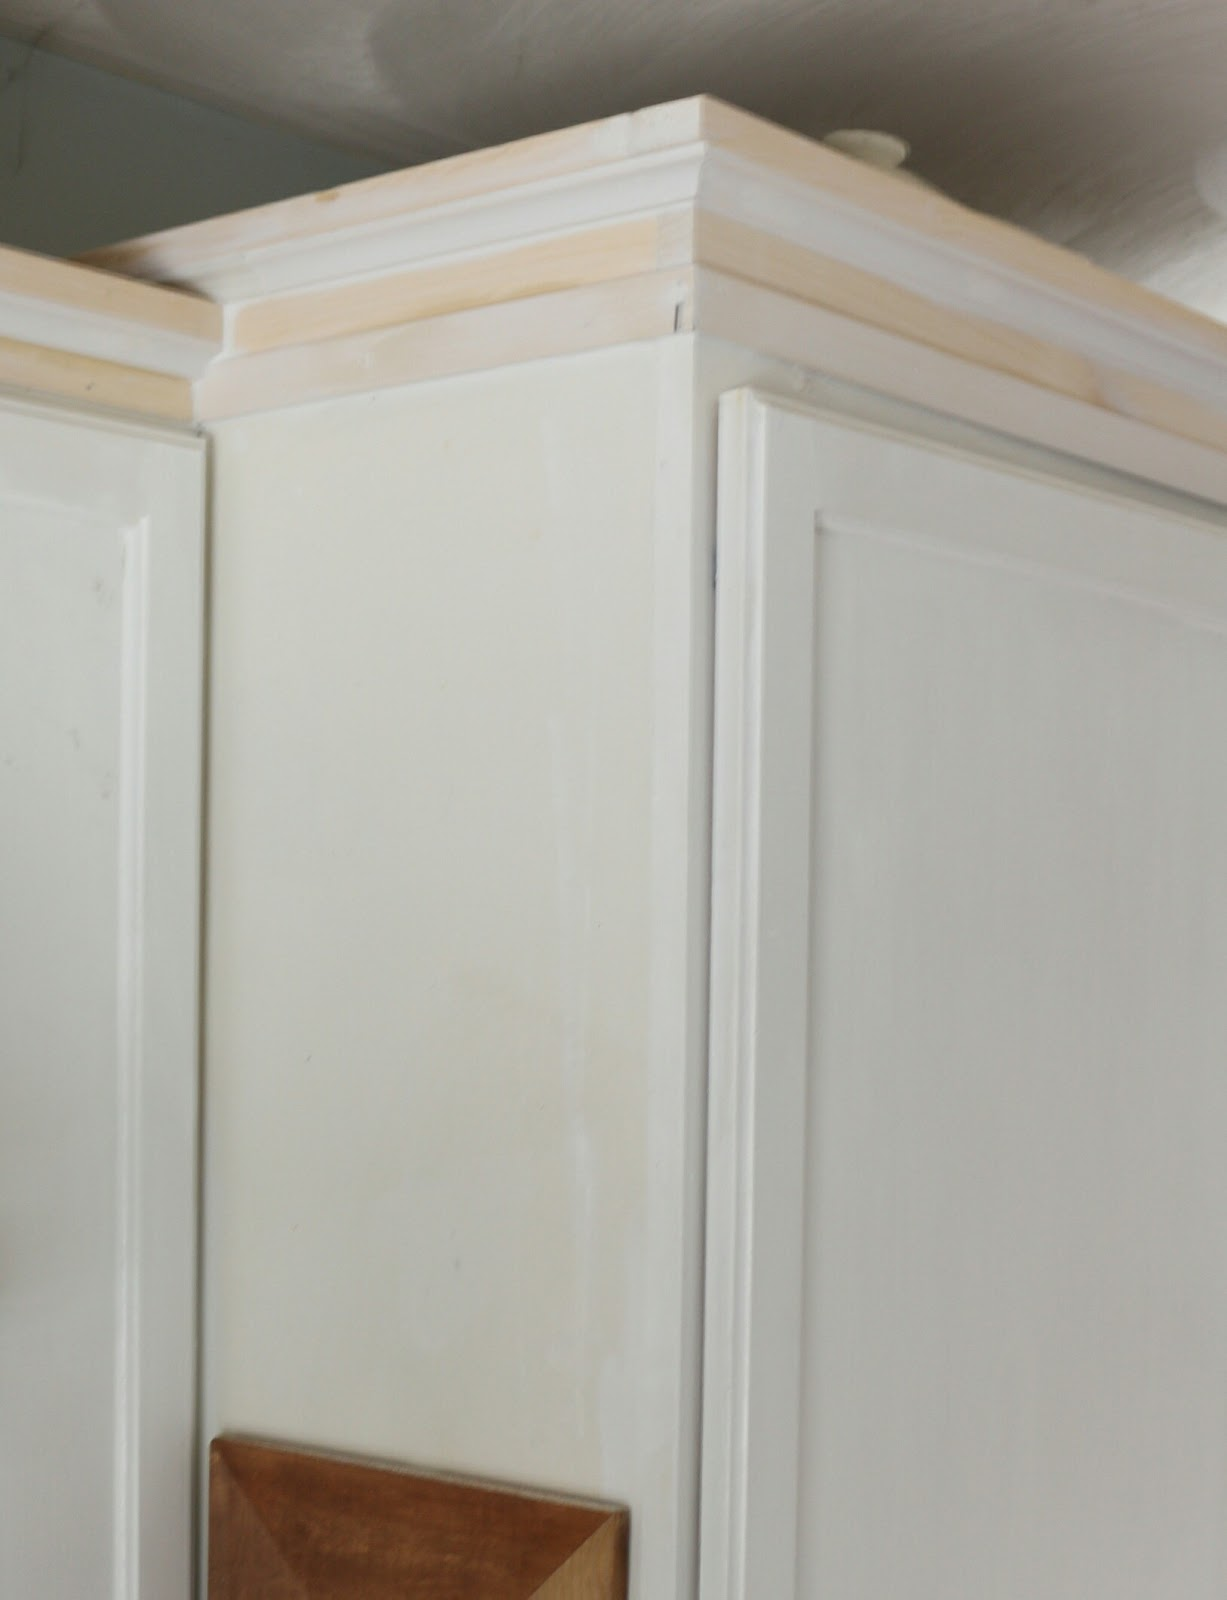 My DIY Kitchen Cabinet Crown Molding How to Fake the Look